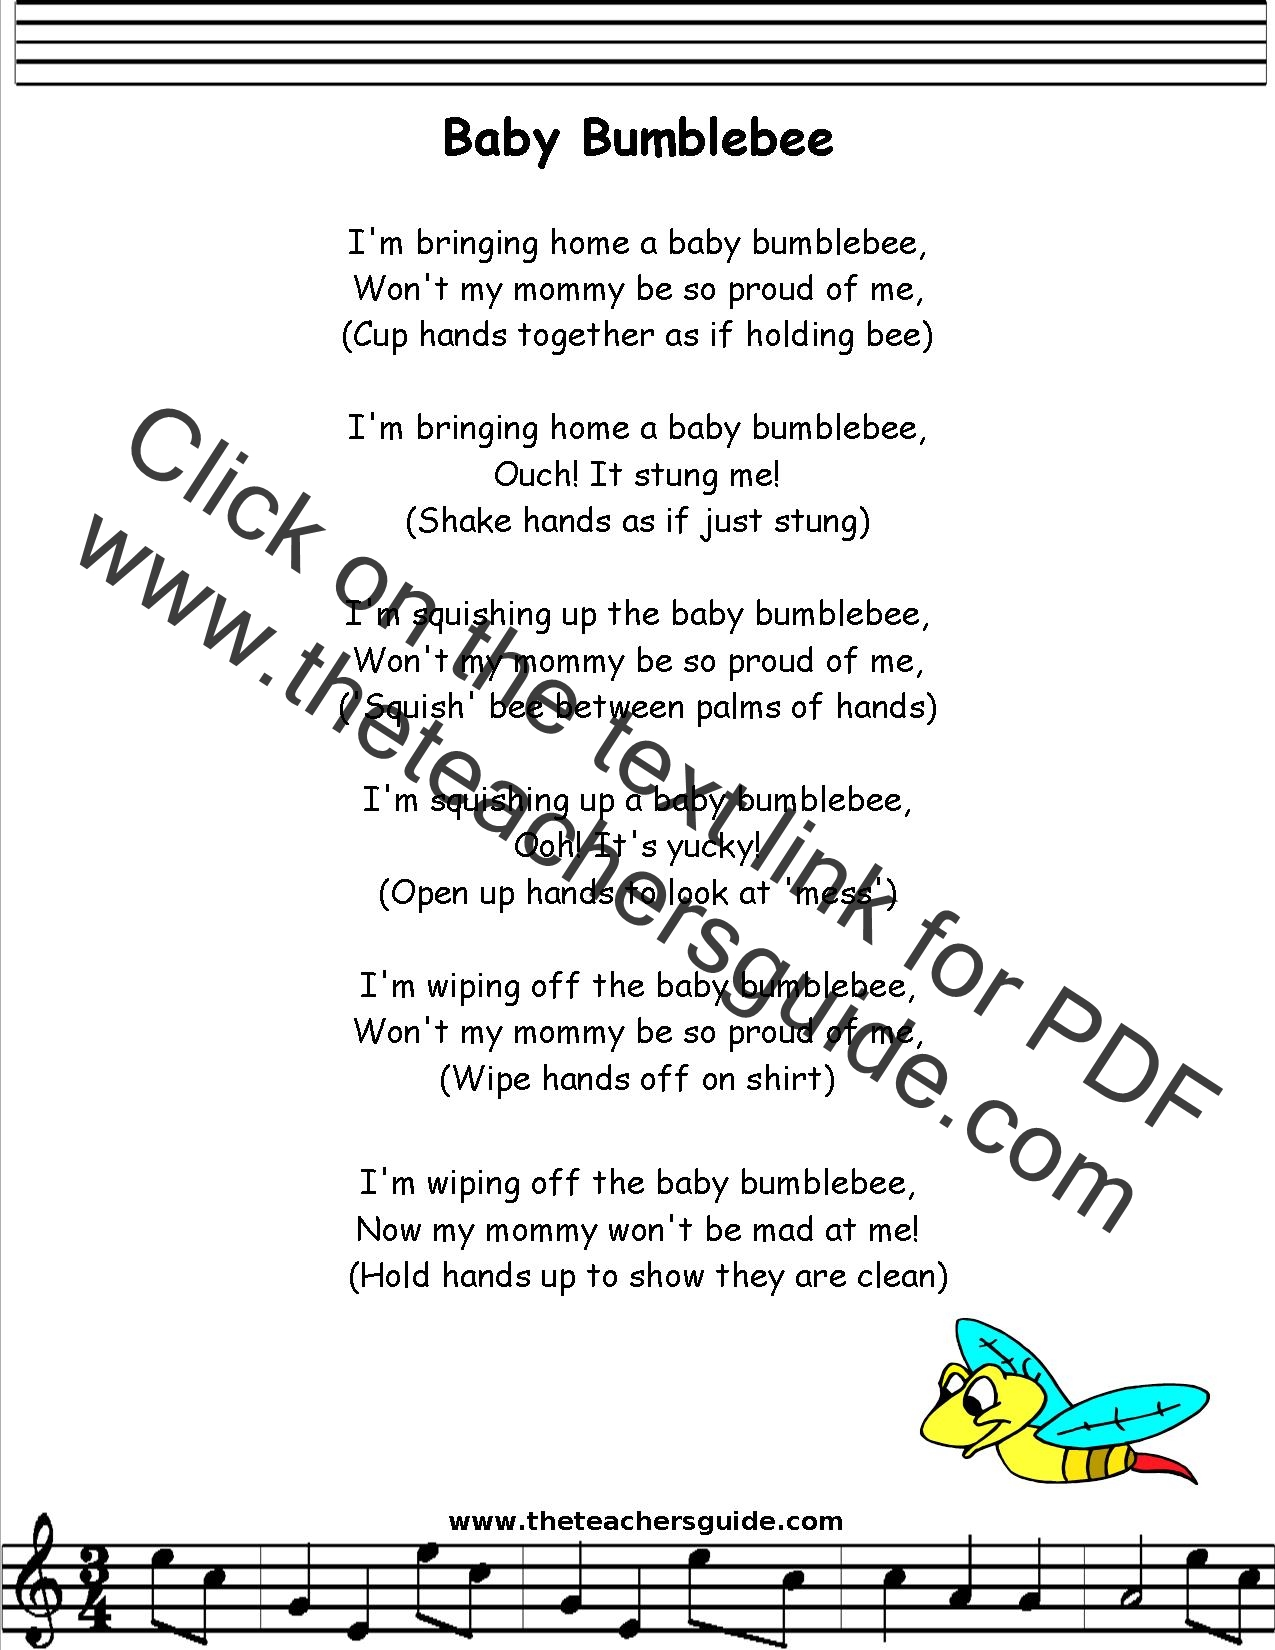 Baby Bumblebee Lyrics Printout Midi And Video